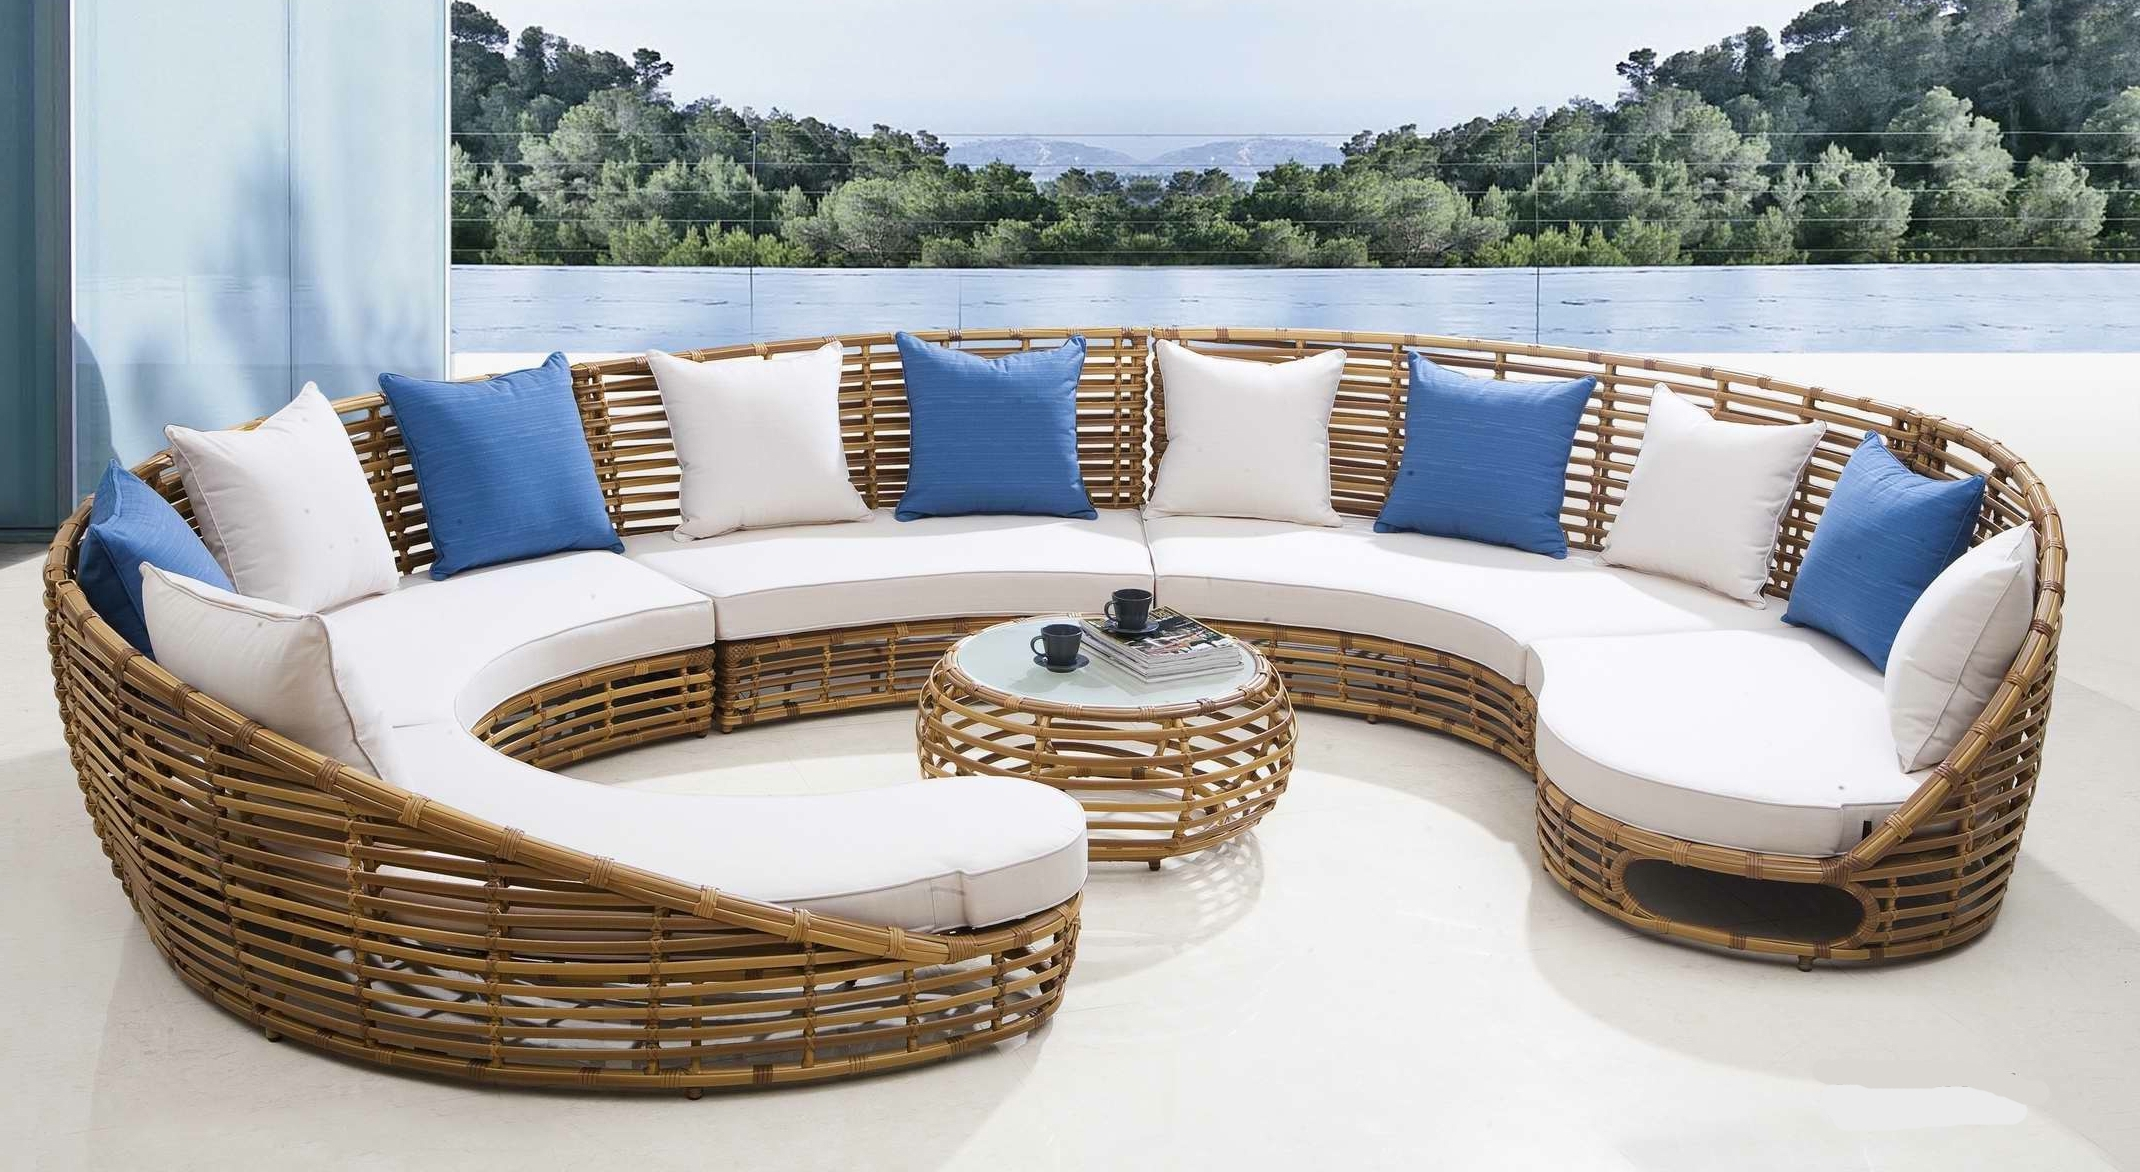 Upscale Patio Umbrellas With Well Known Luxury Outdoor Furniture (View 11 of 20)